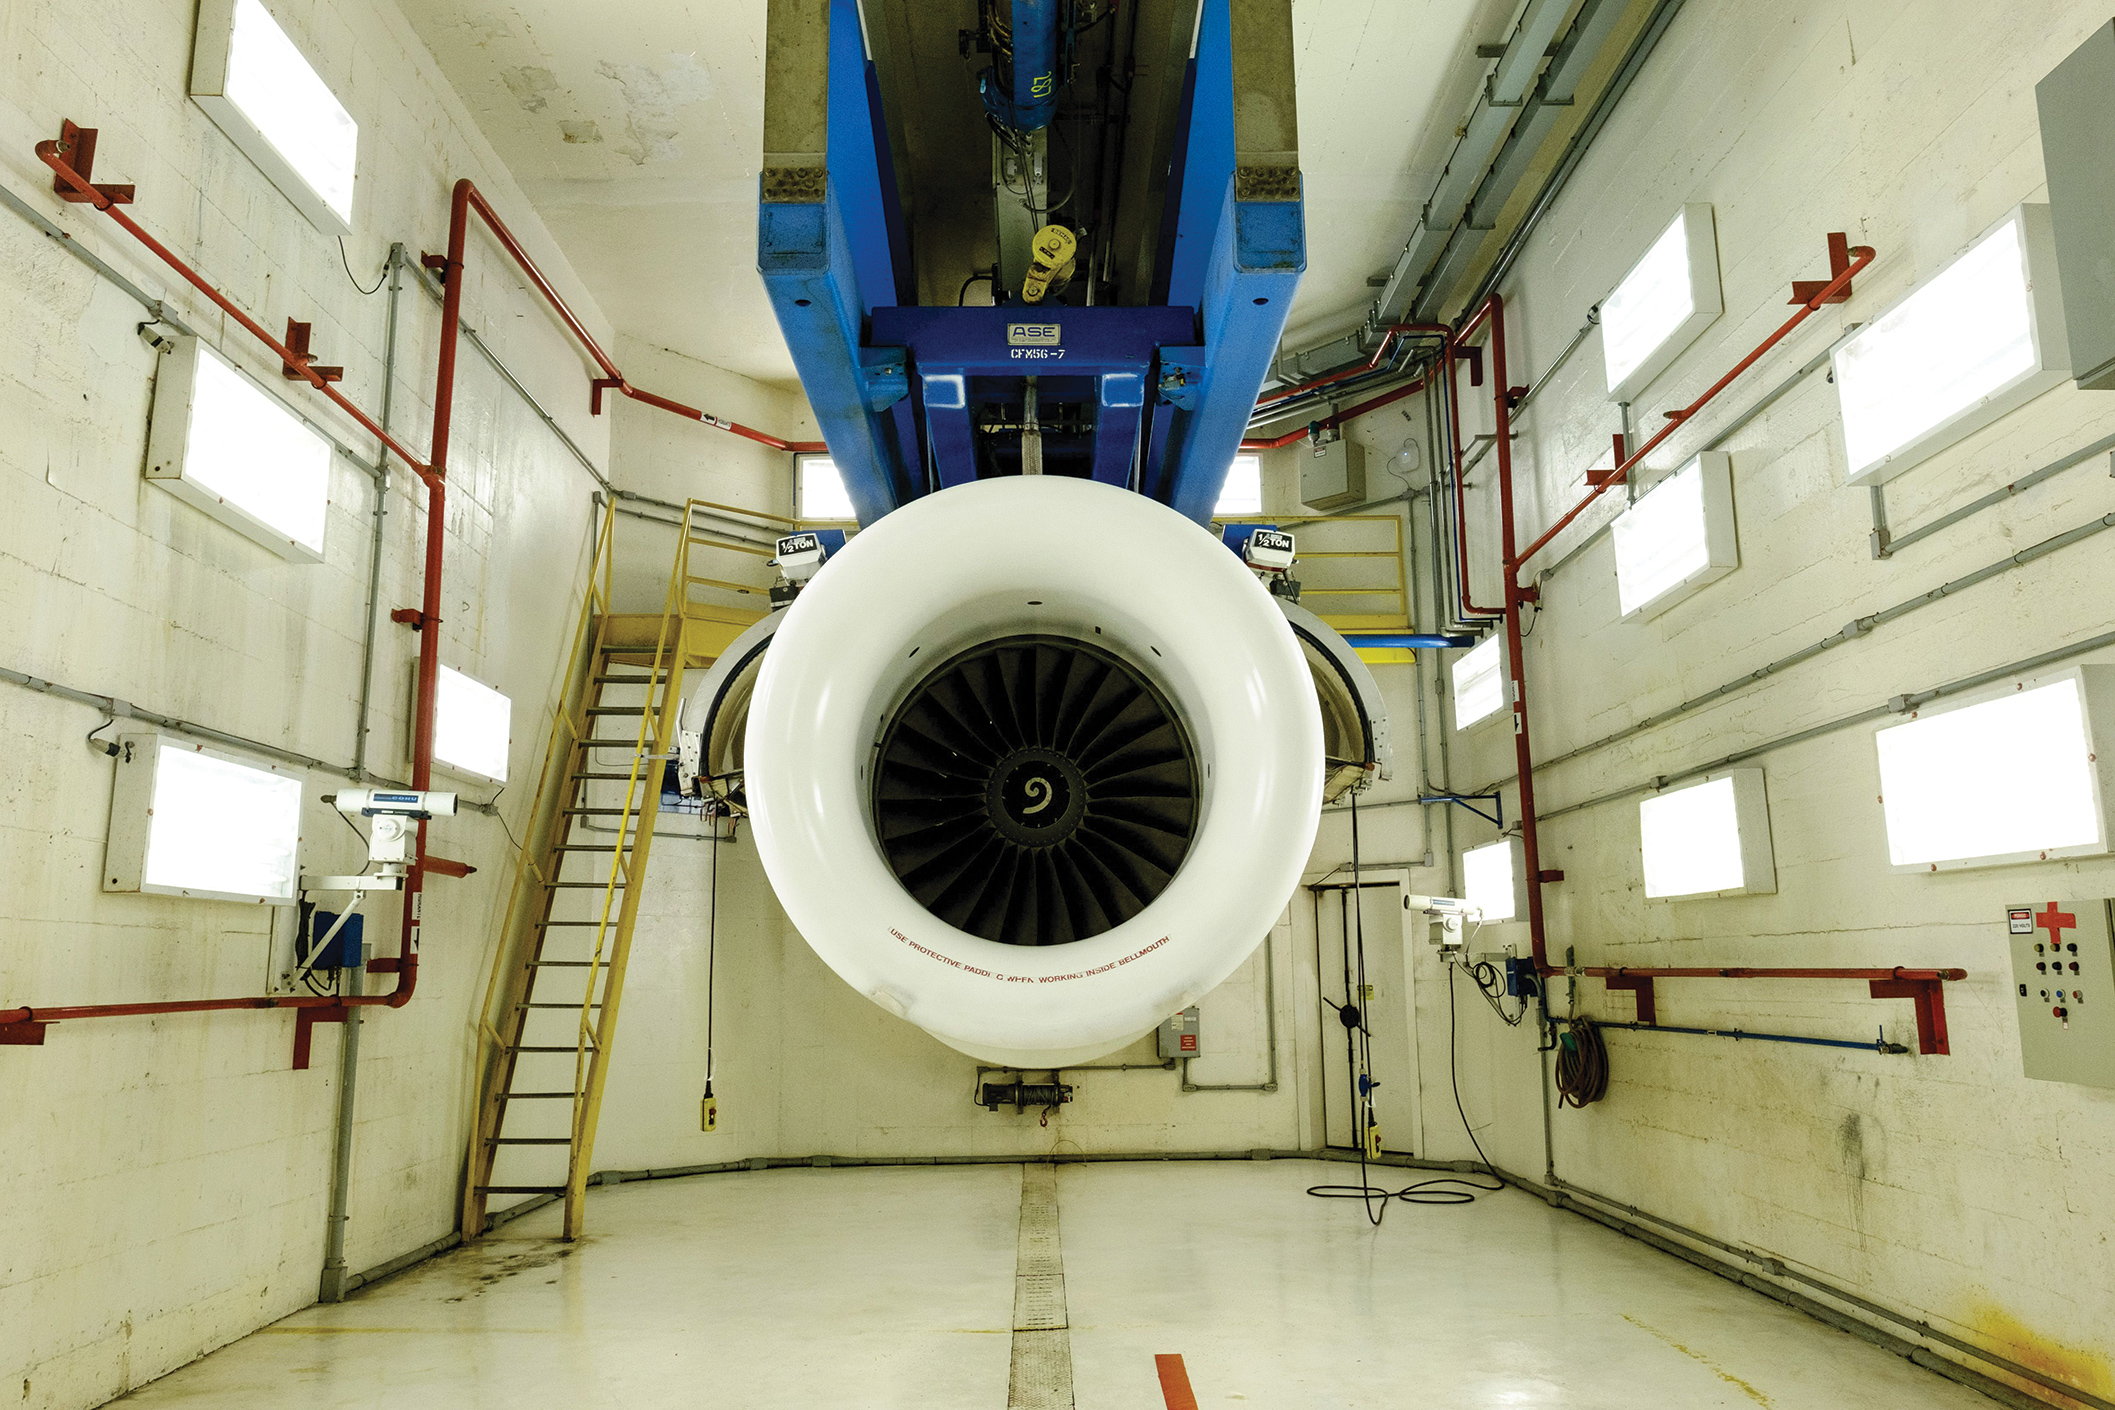 General Electric Builds an AI Workforce - MIT Technology Review